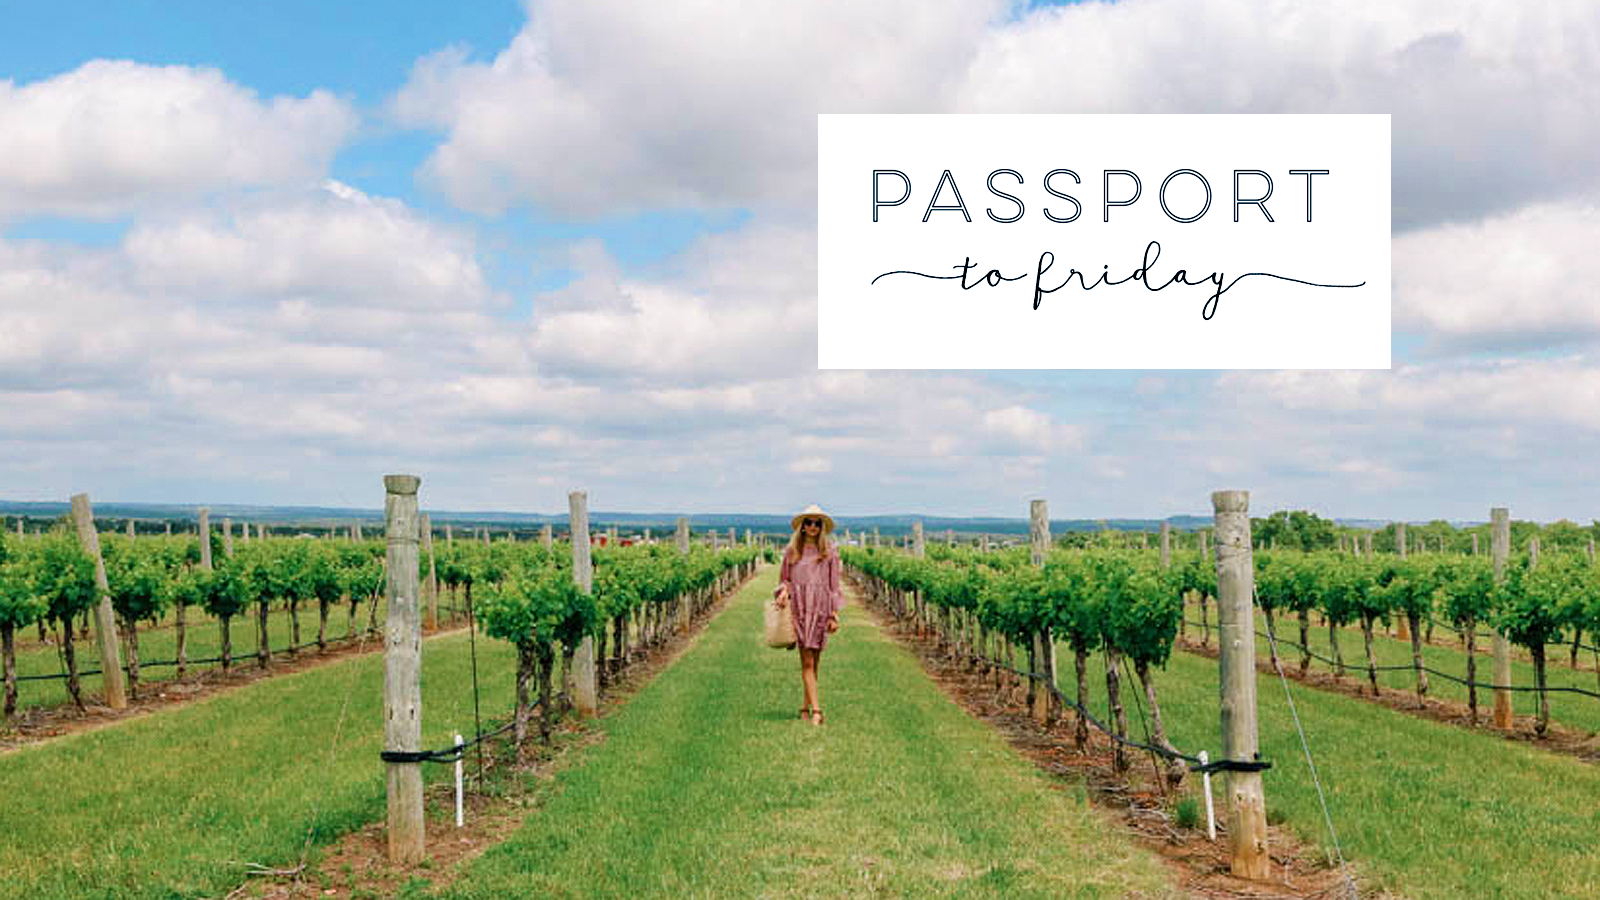 WEEKEND GETAWAY TO TEXAS WINE COUNTRY - Travel bloggist Chelsea Martin's